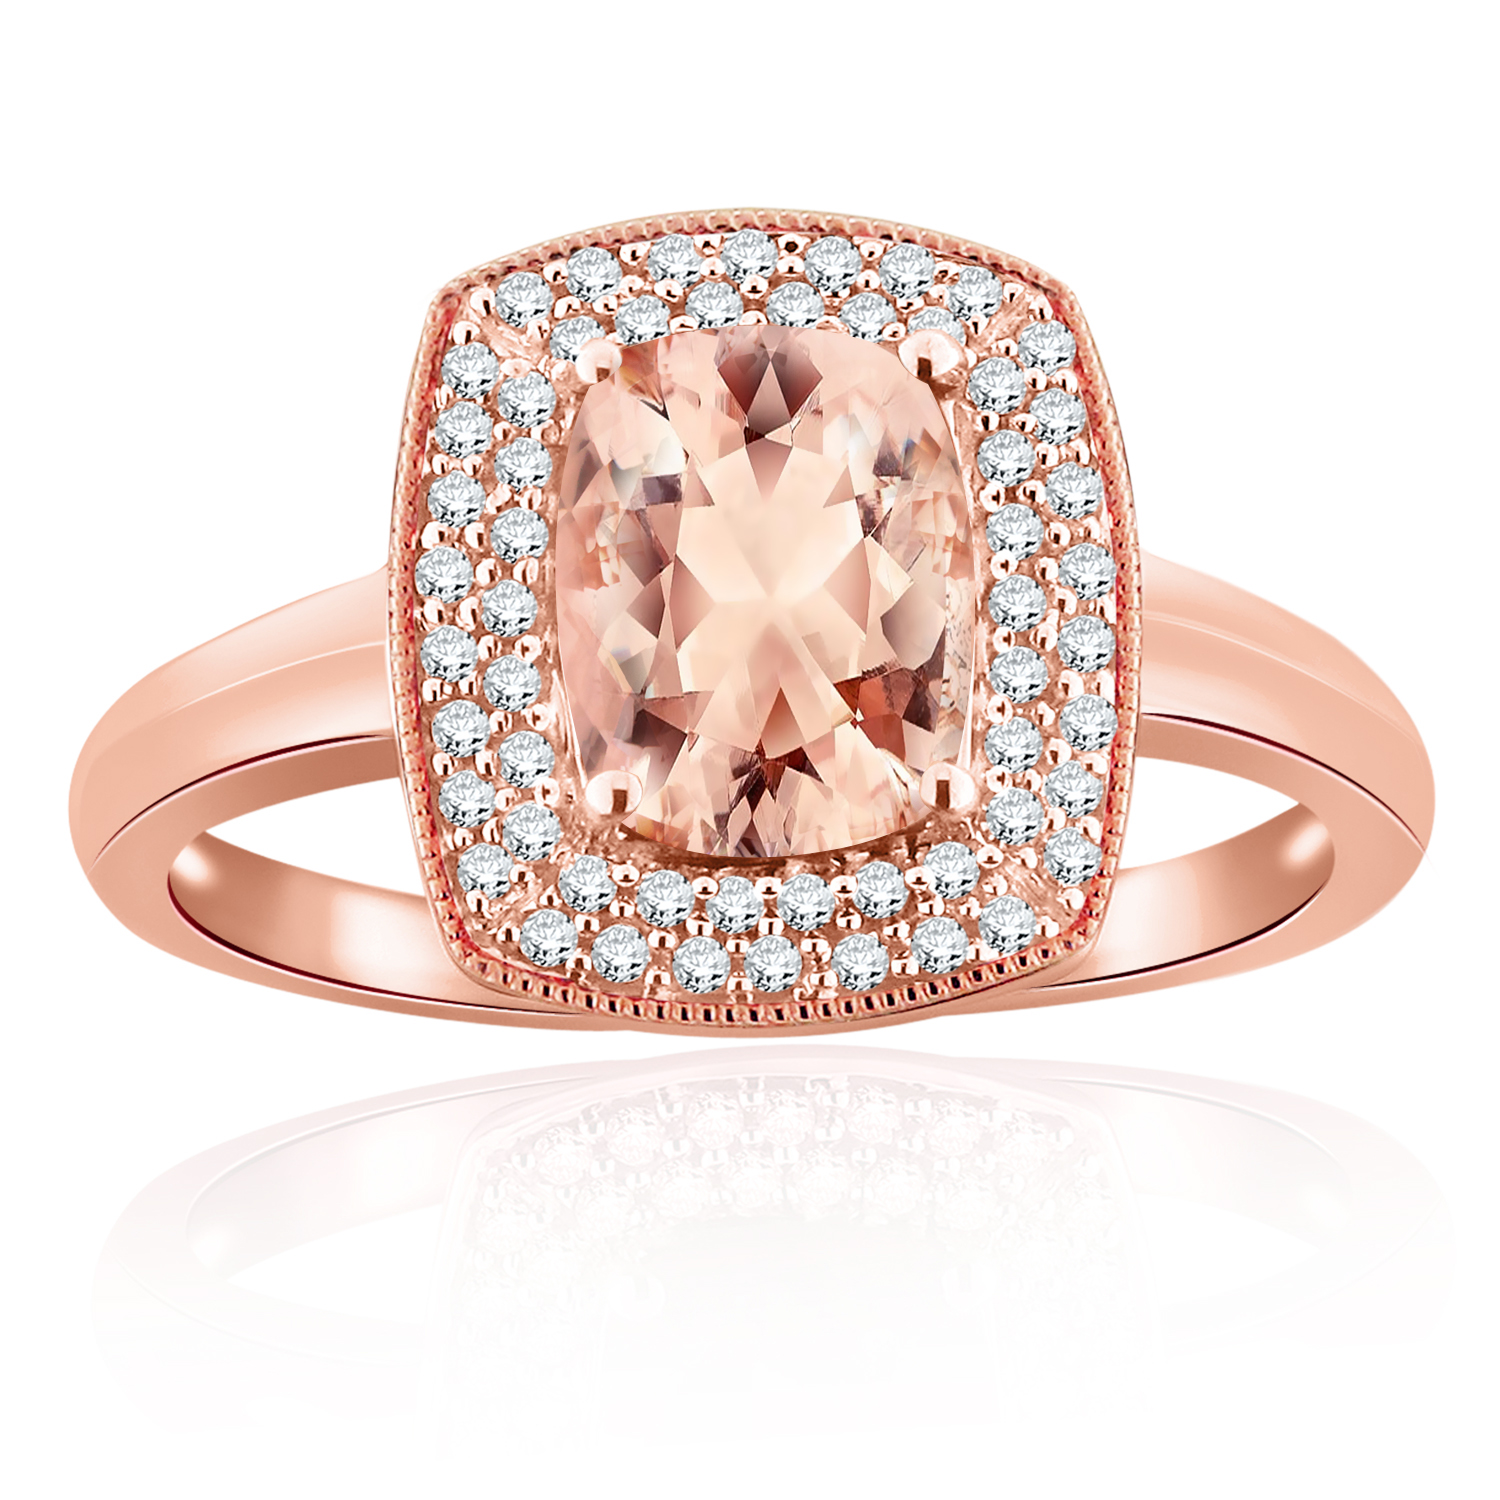 AMELIA Halo Morganite Engagement Ring In 14K Rose Gold With 4.00 Carat Cushion Stone